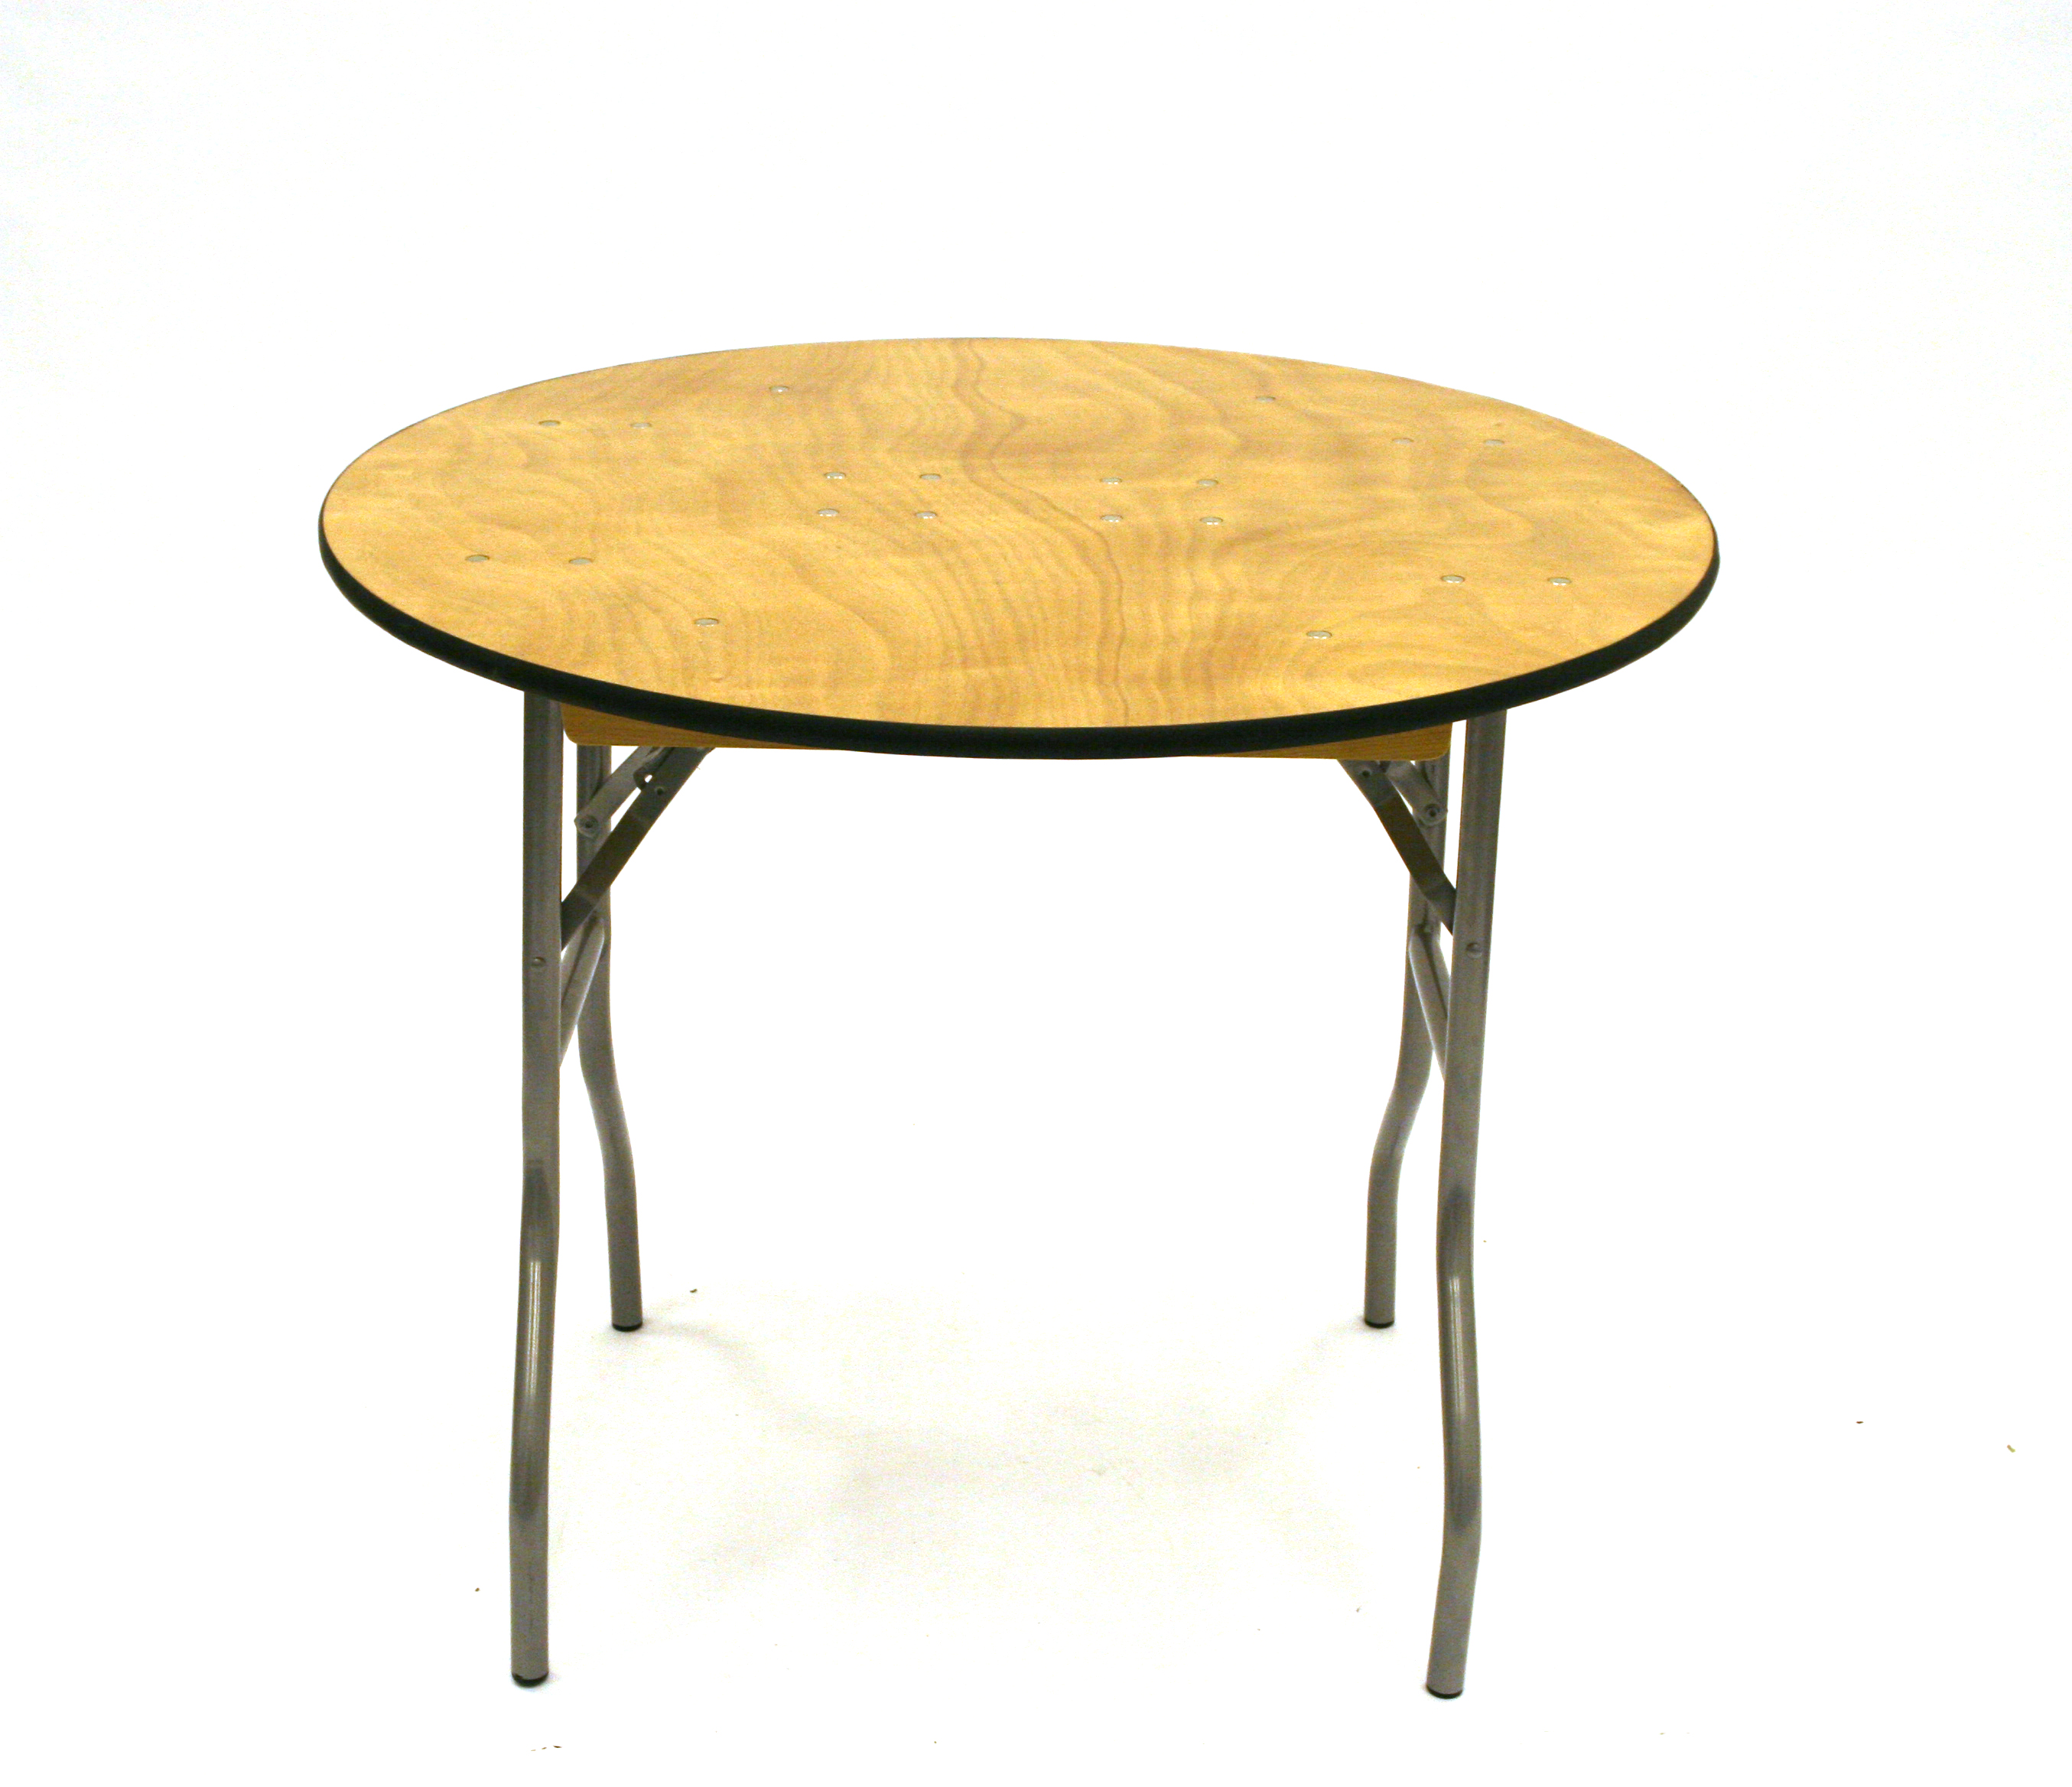 3' Diameter Table - BE Event Hire